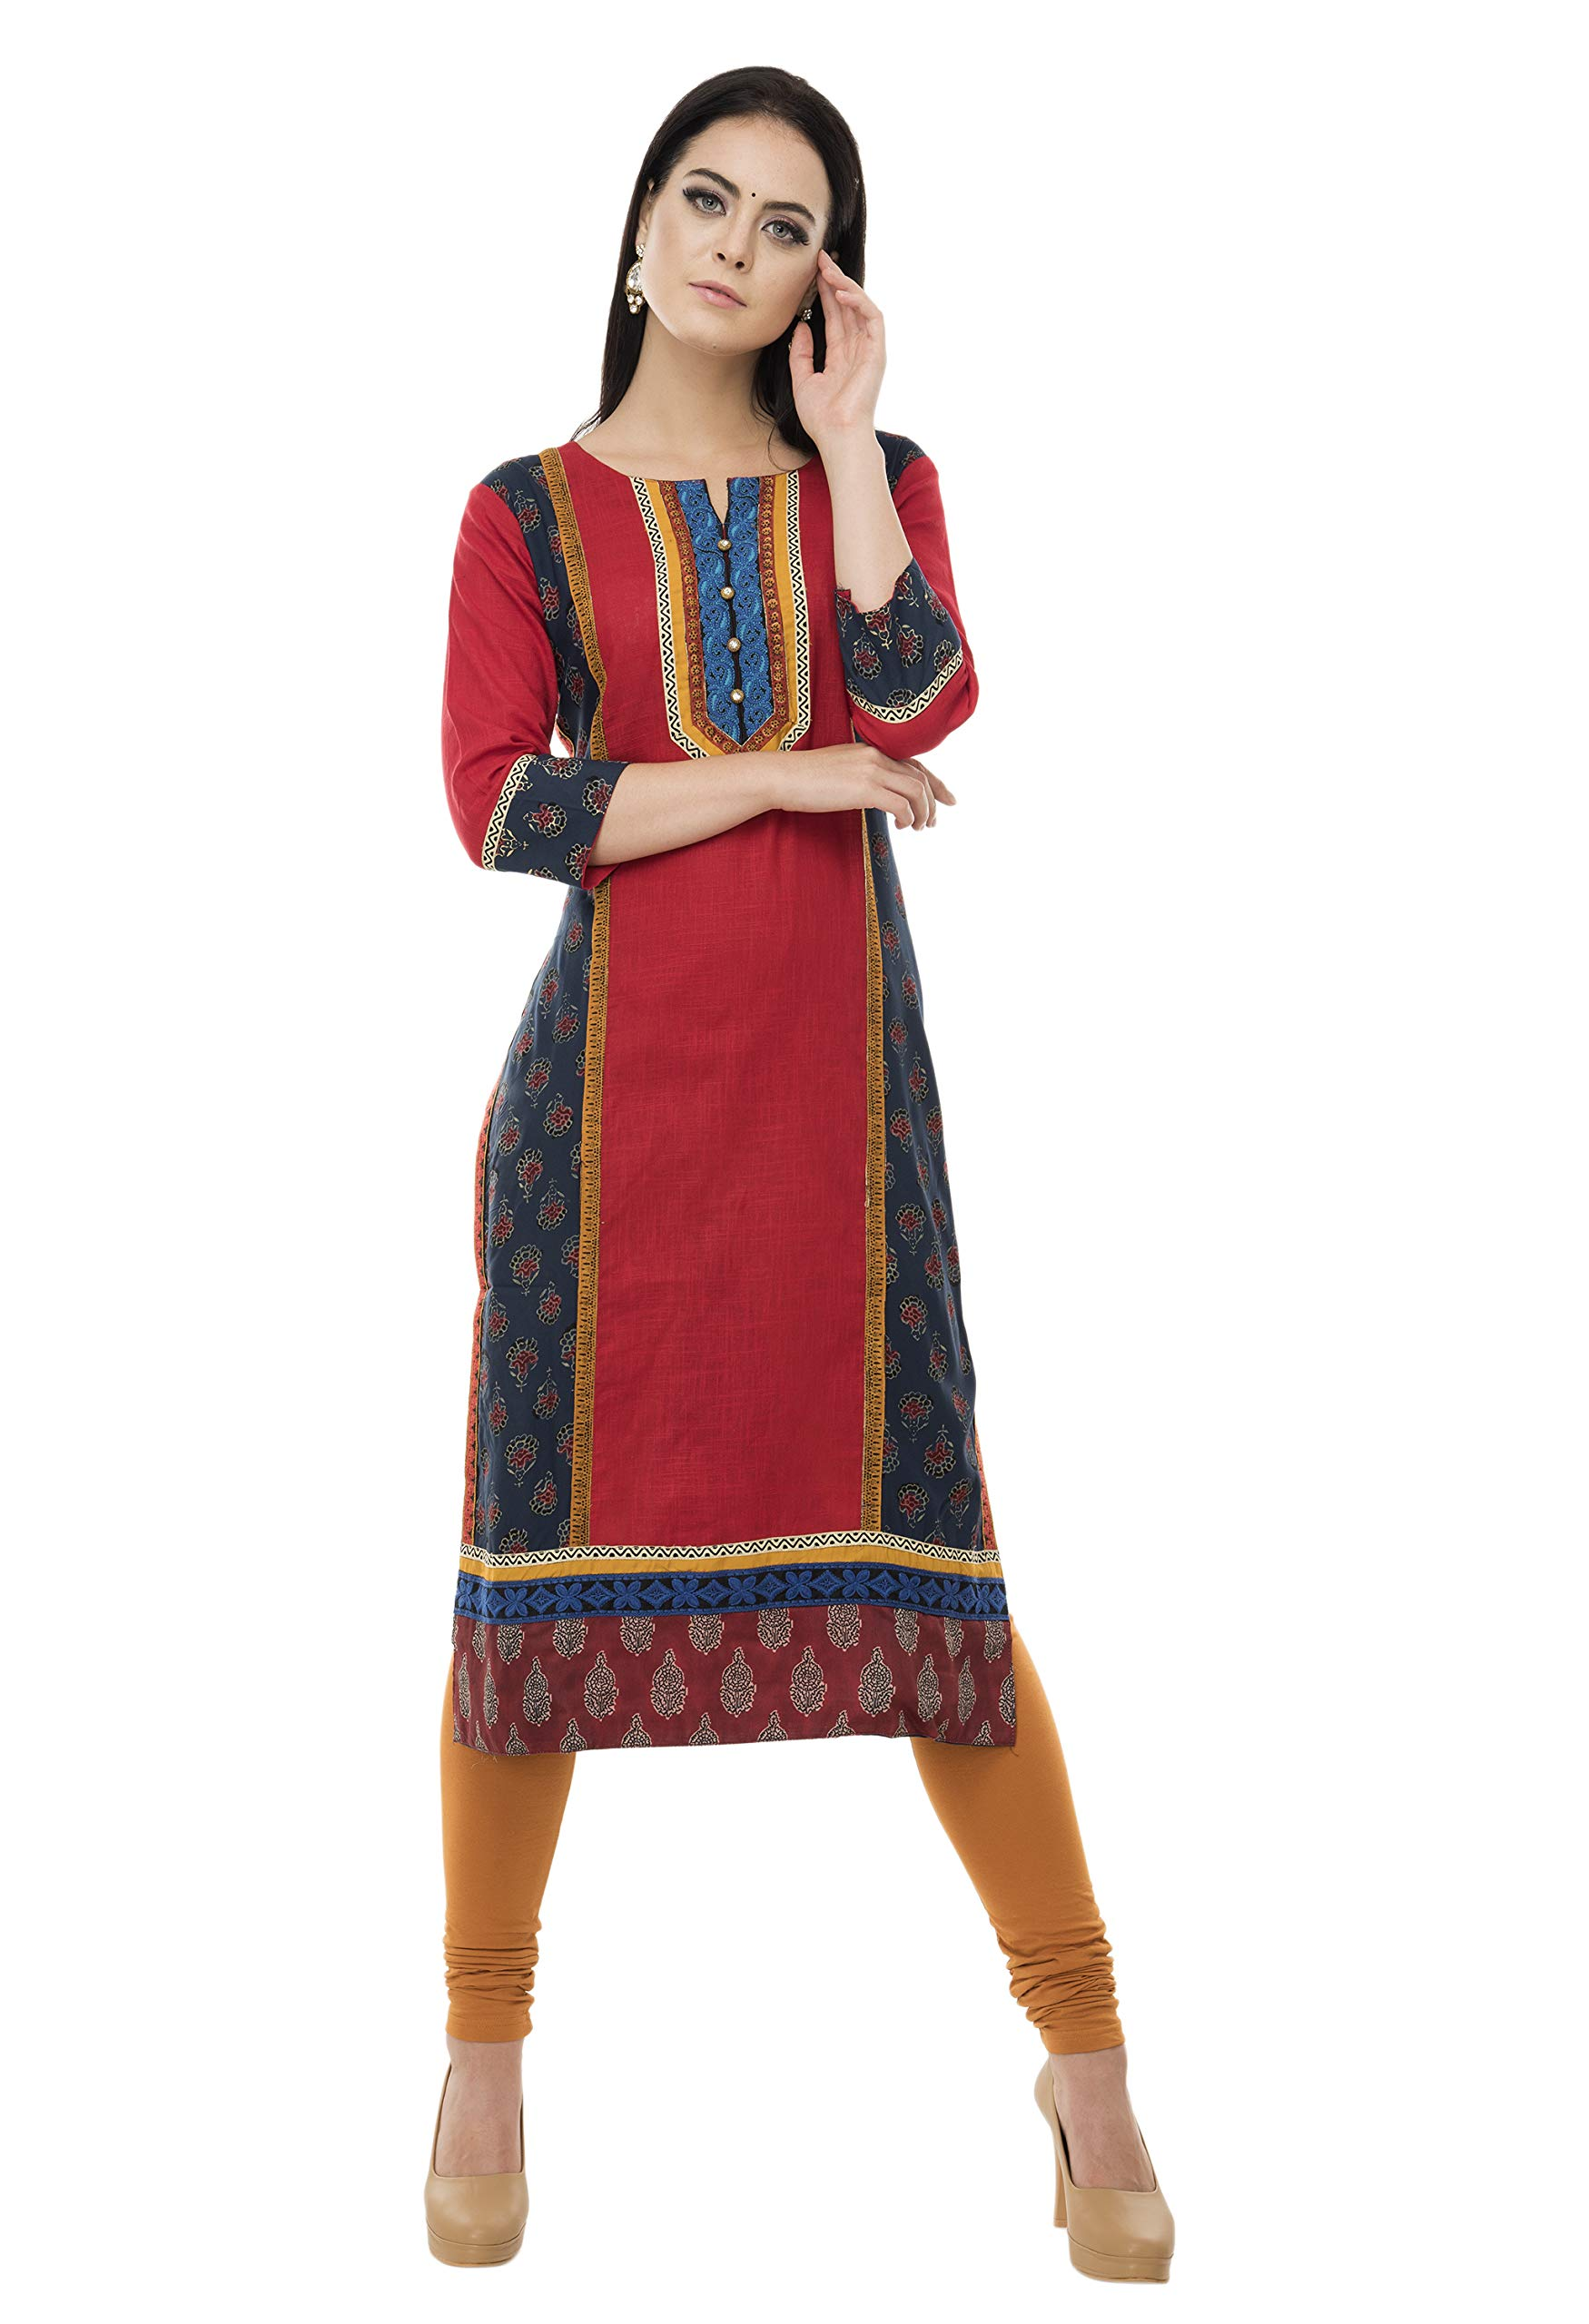 SABHYATA Womens Kurta Indian Kurtis Women Cotton Casual Tunic Top Long Dress X-Large RED